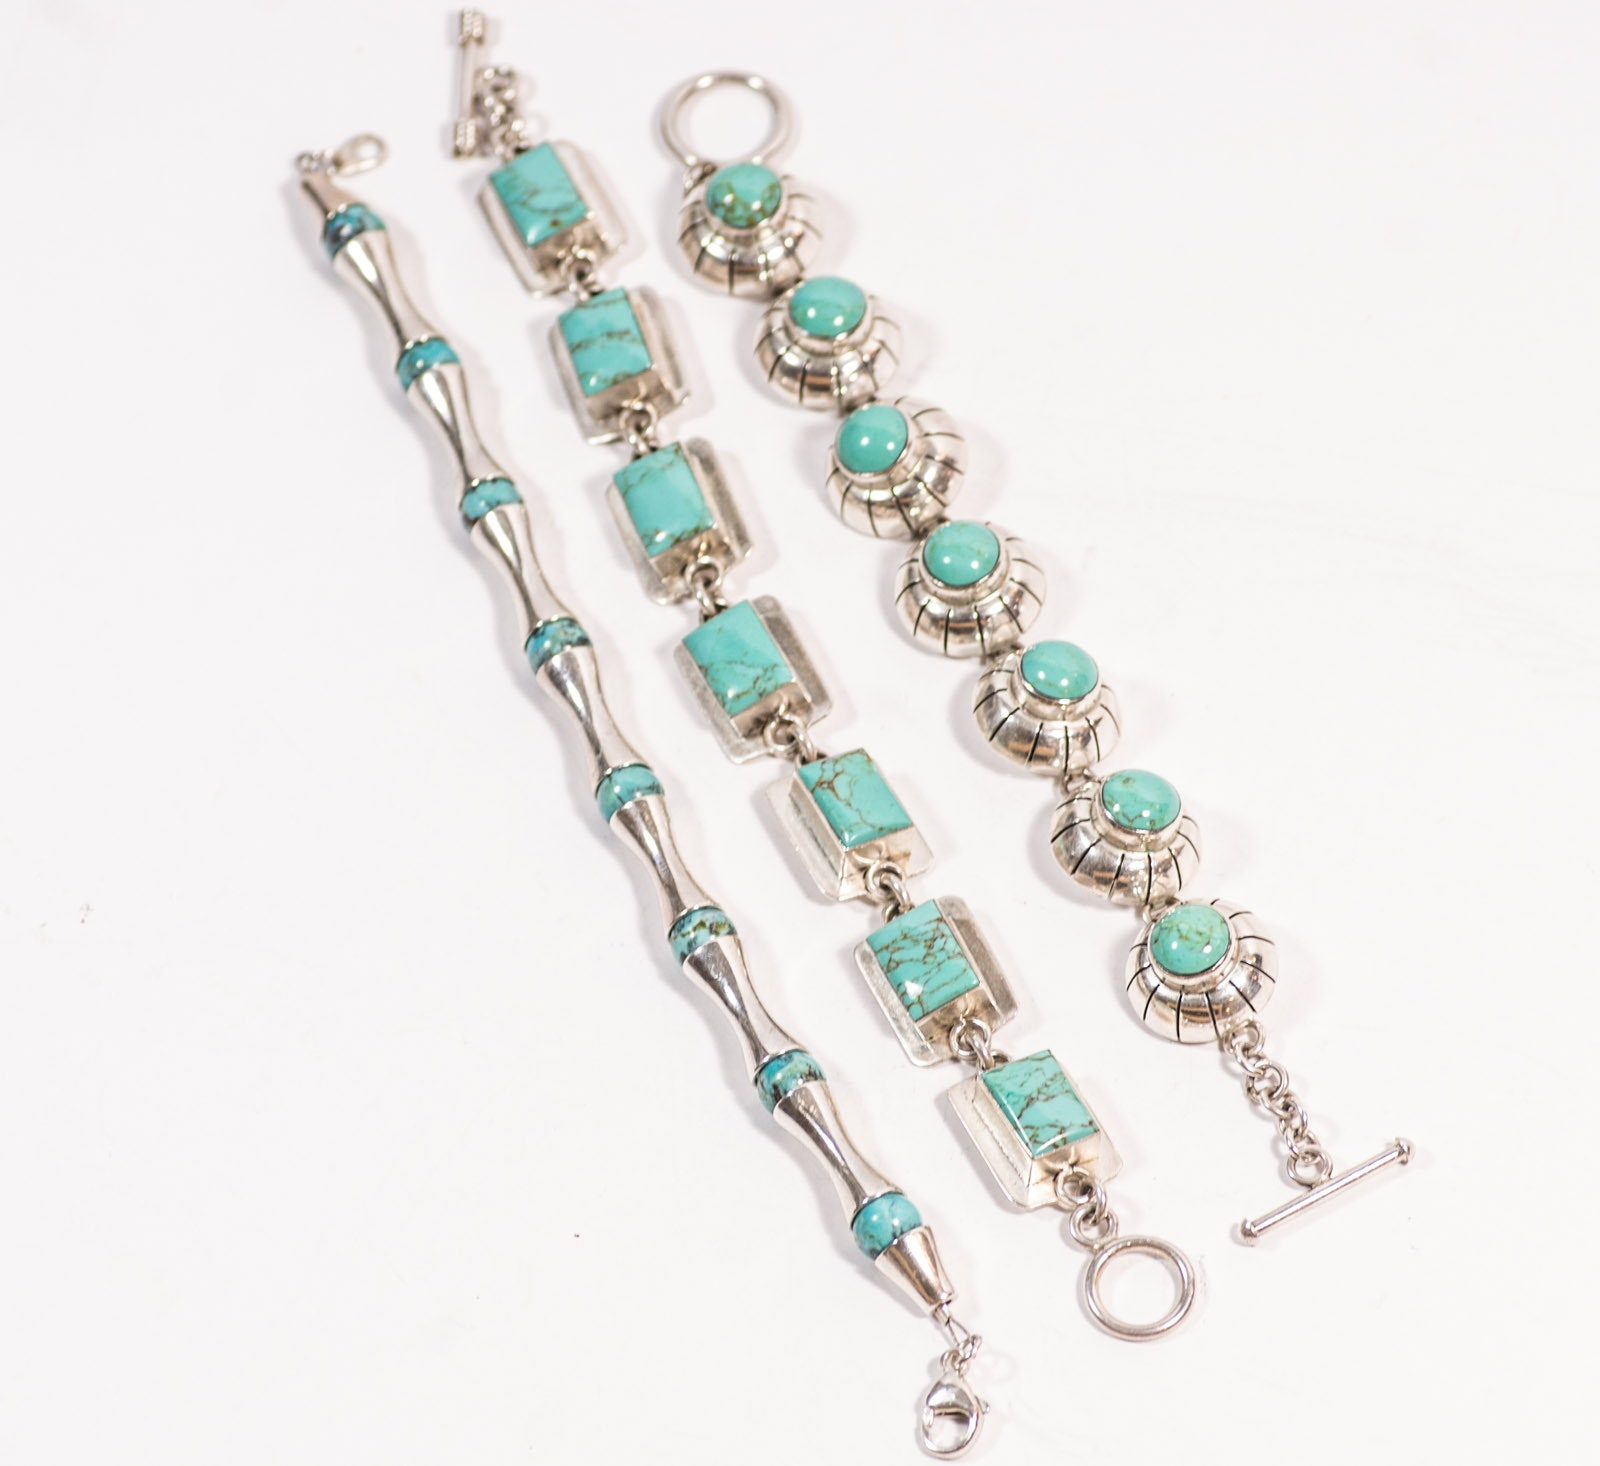 Three Sterling Silver Turquoise Bracelets